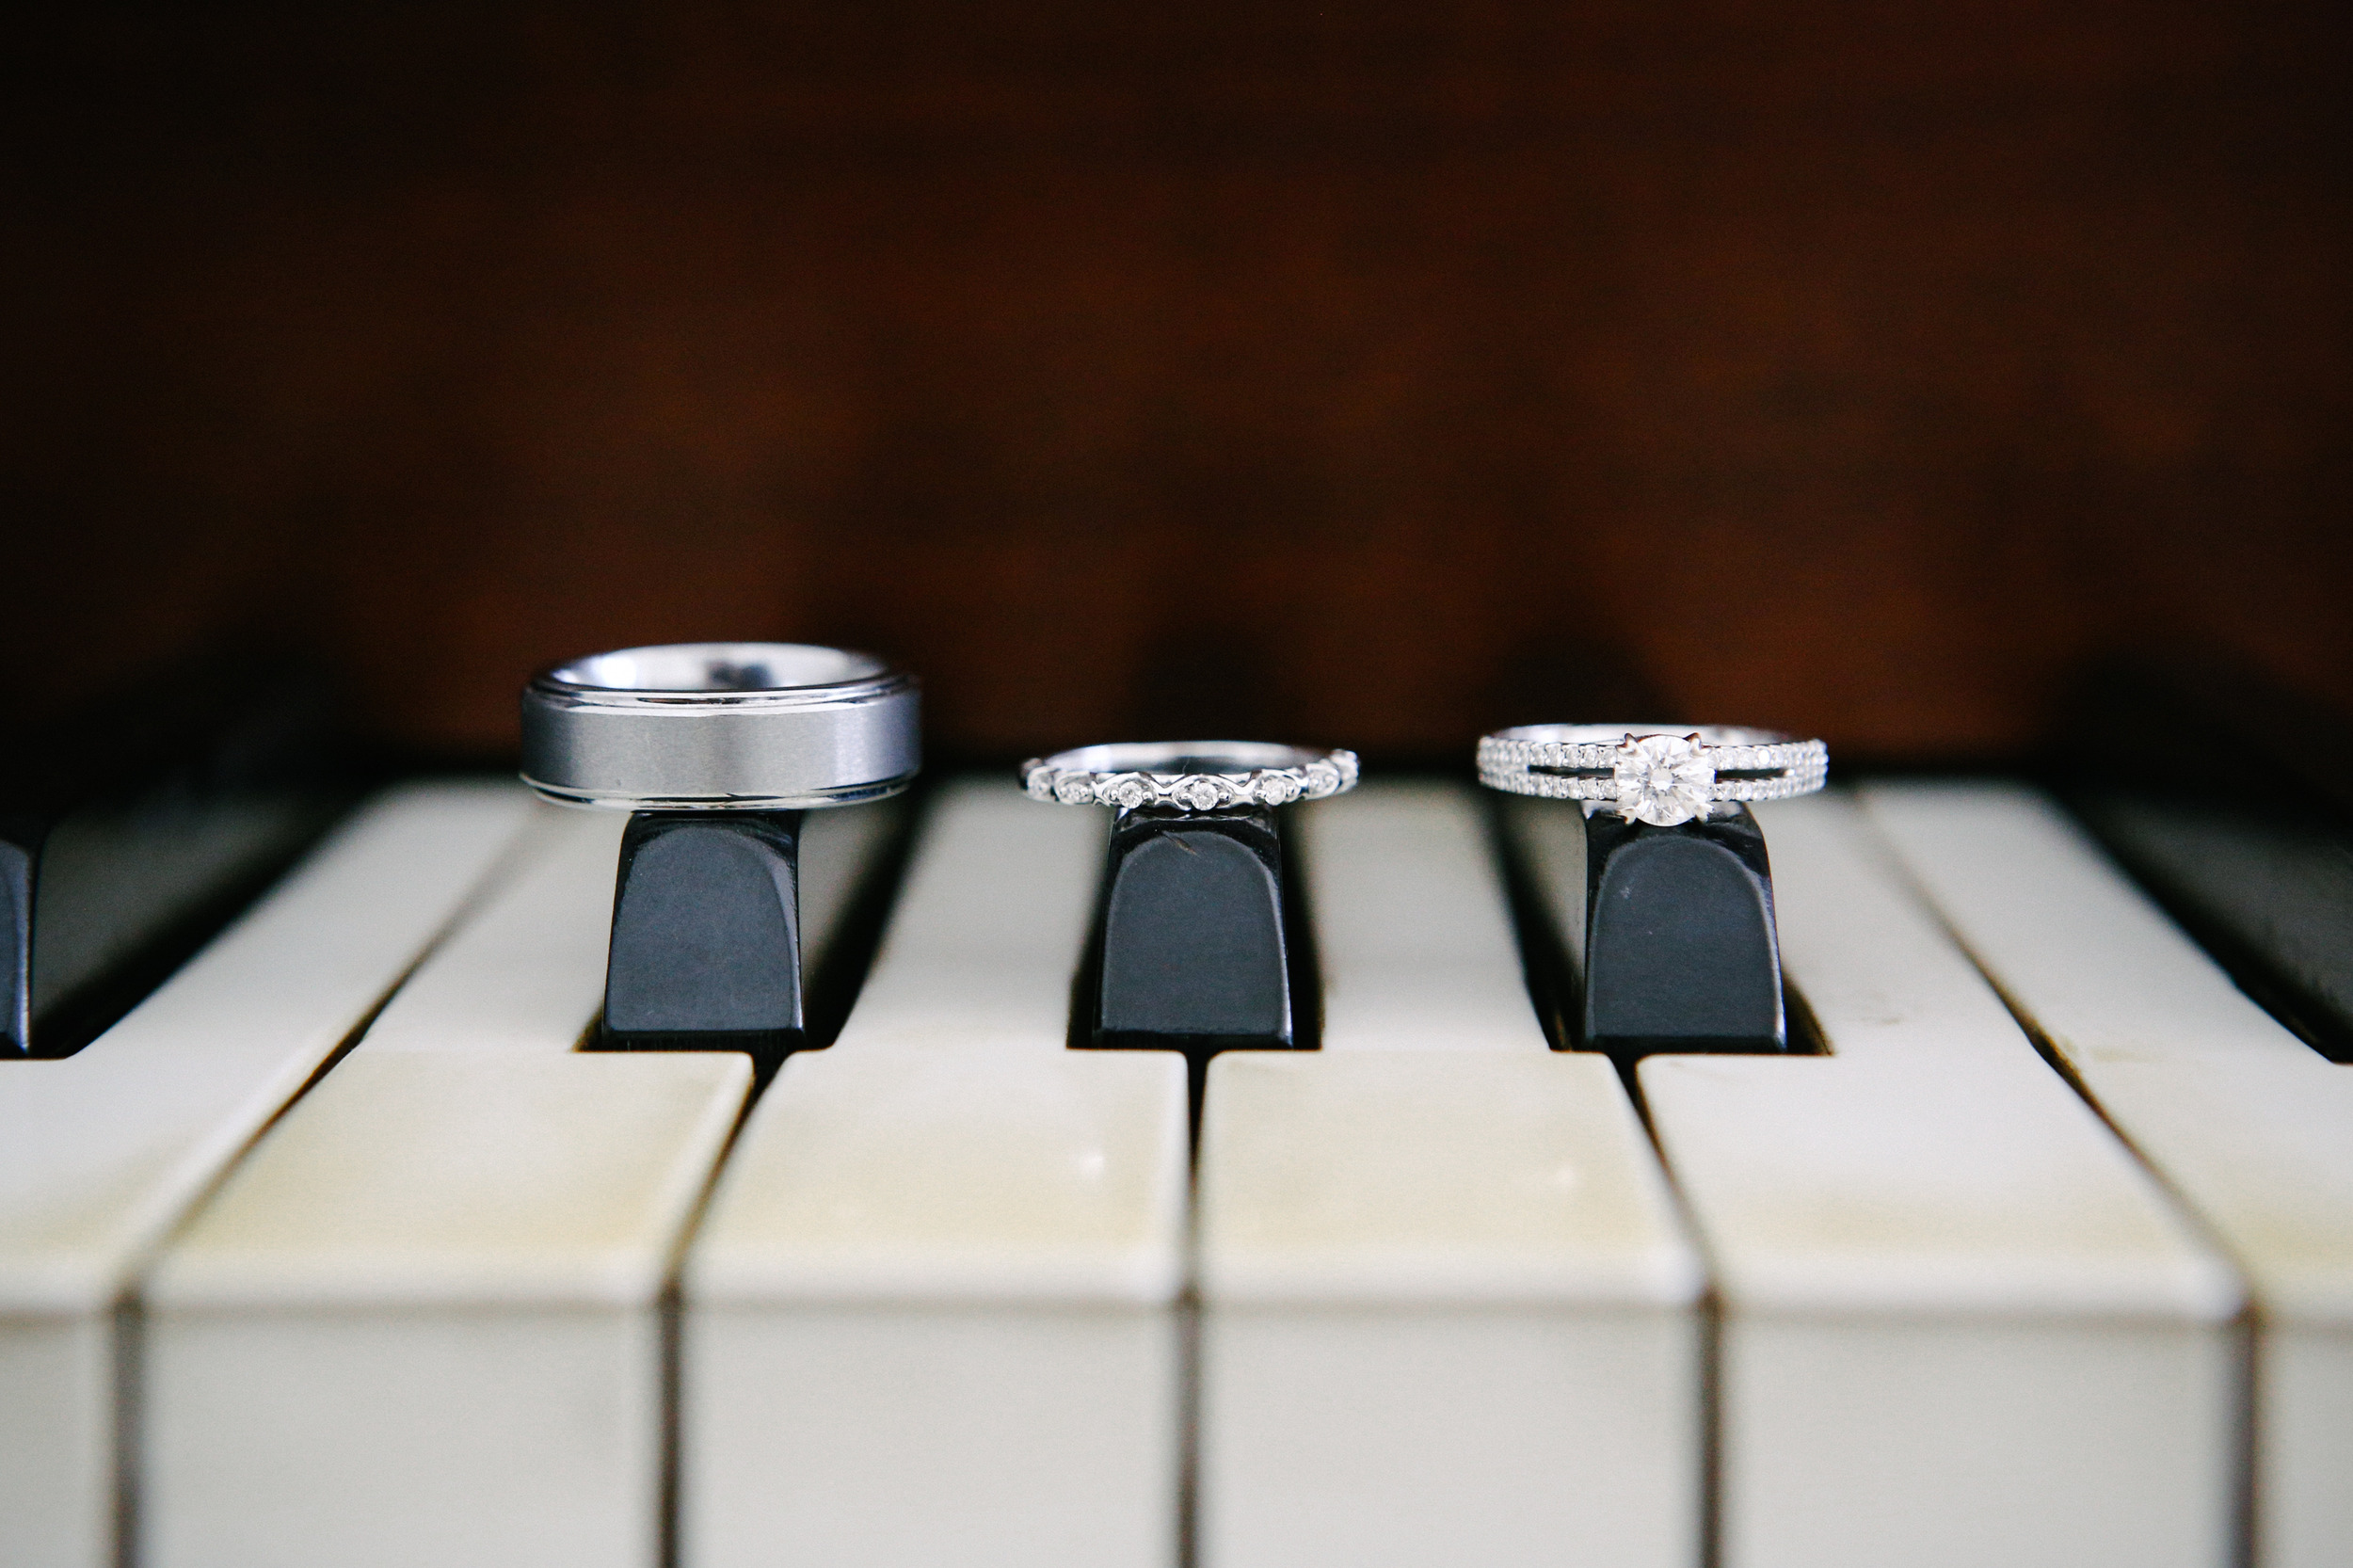 Two ring shots in a row? Crazy, I know! But, they are both favorites!